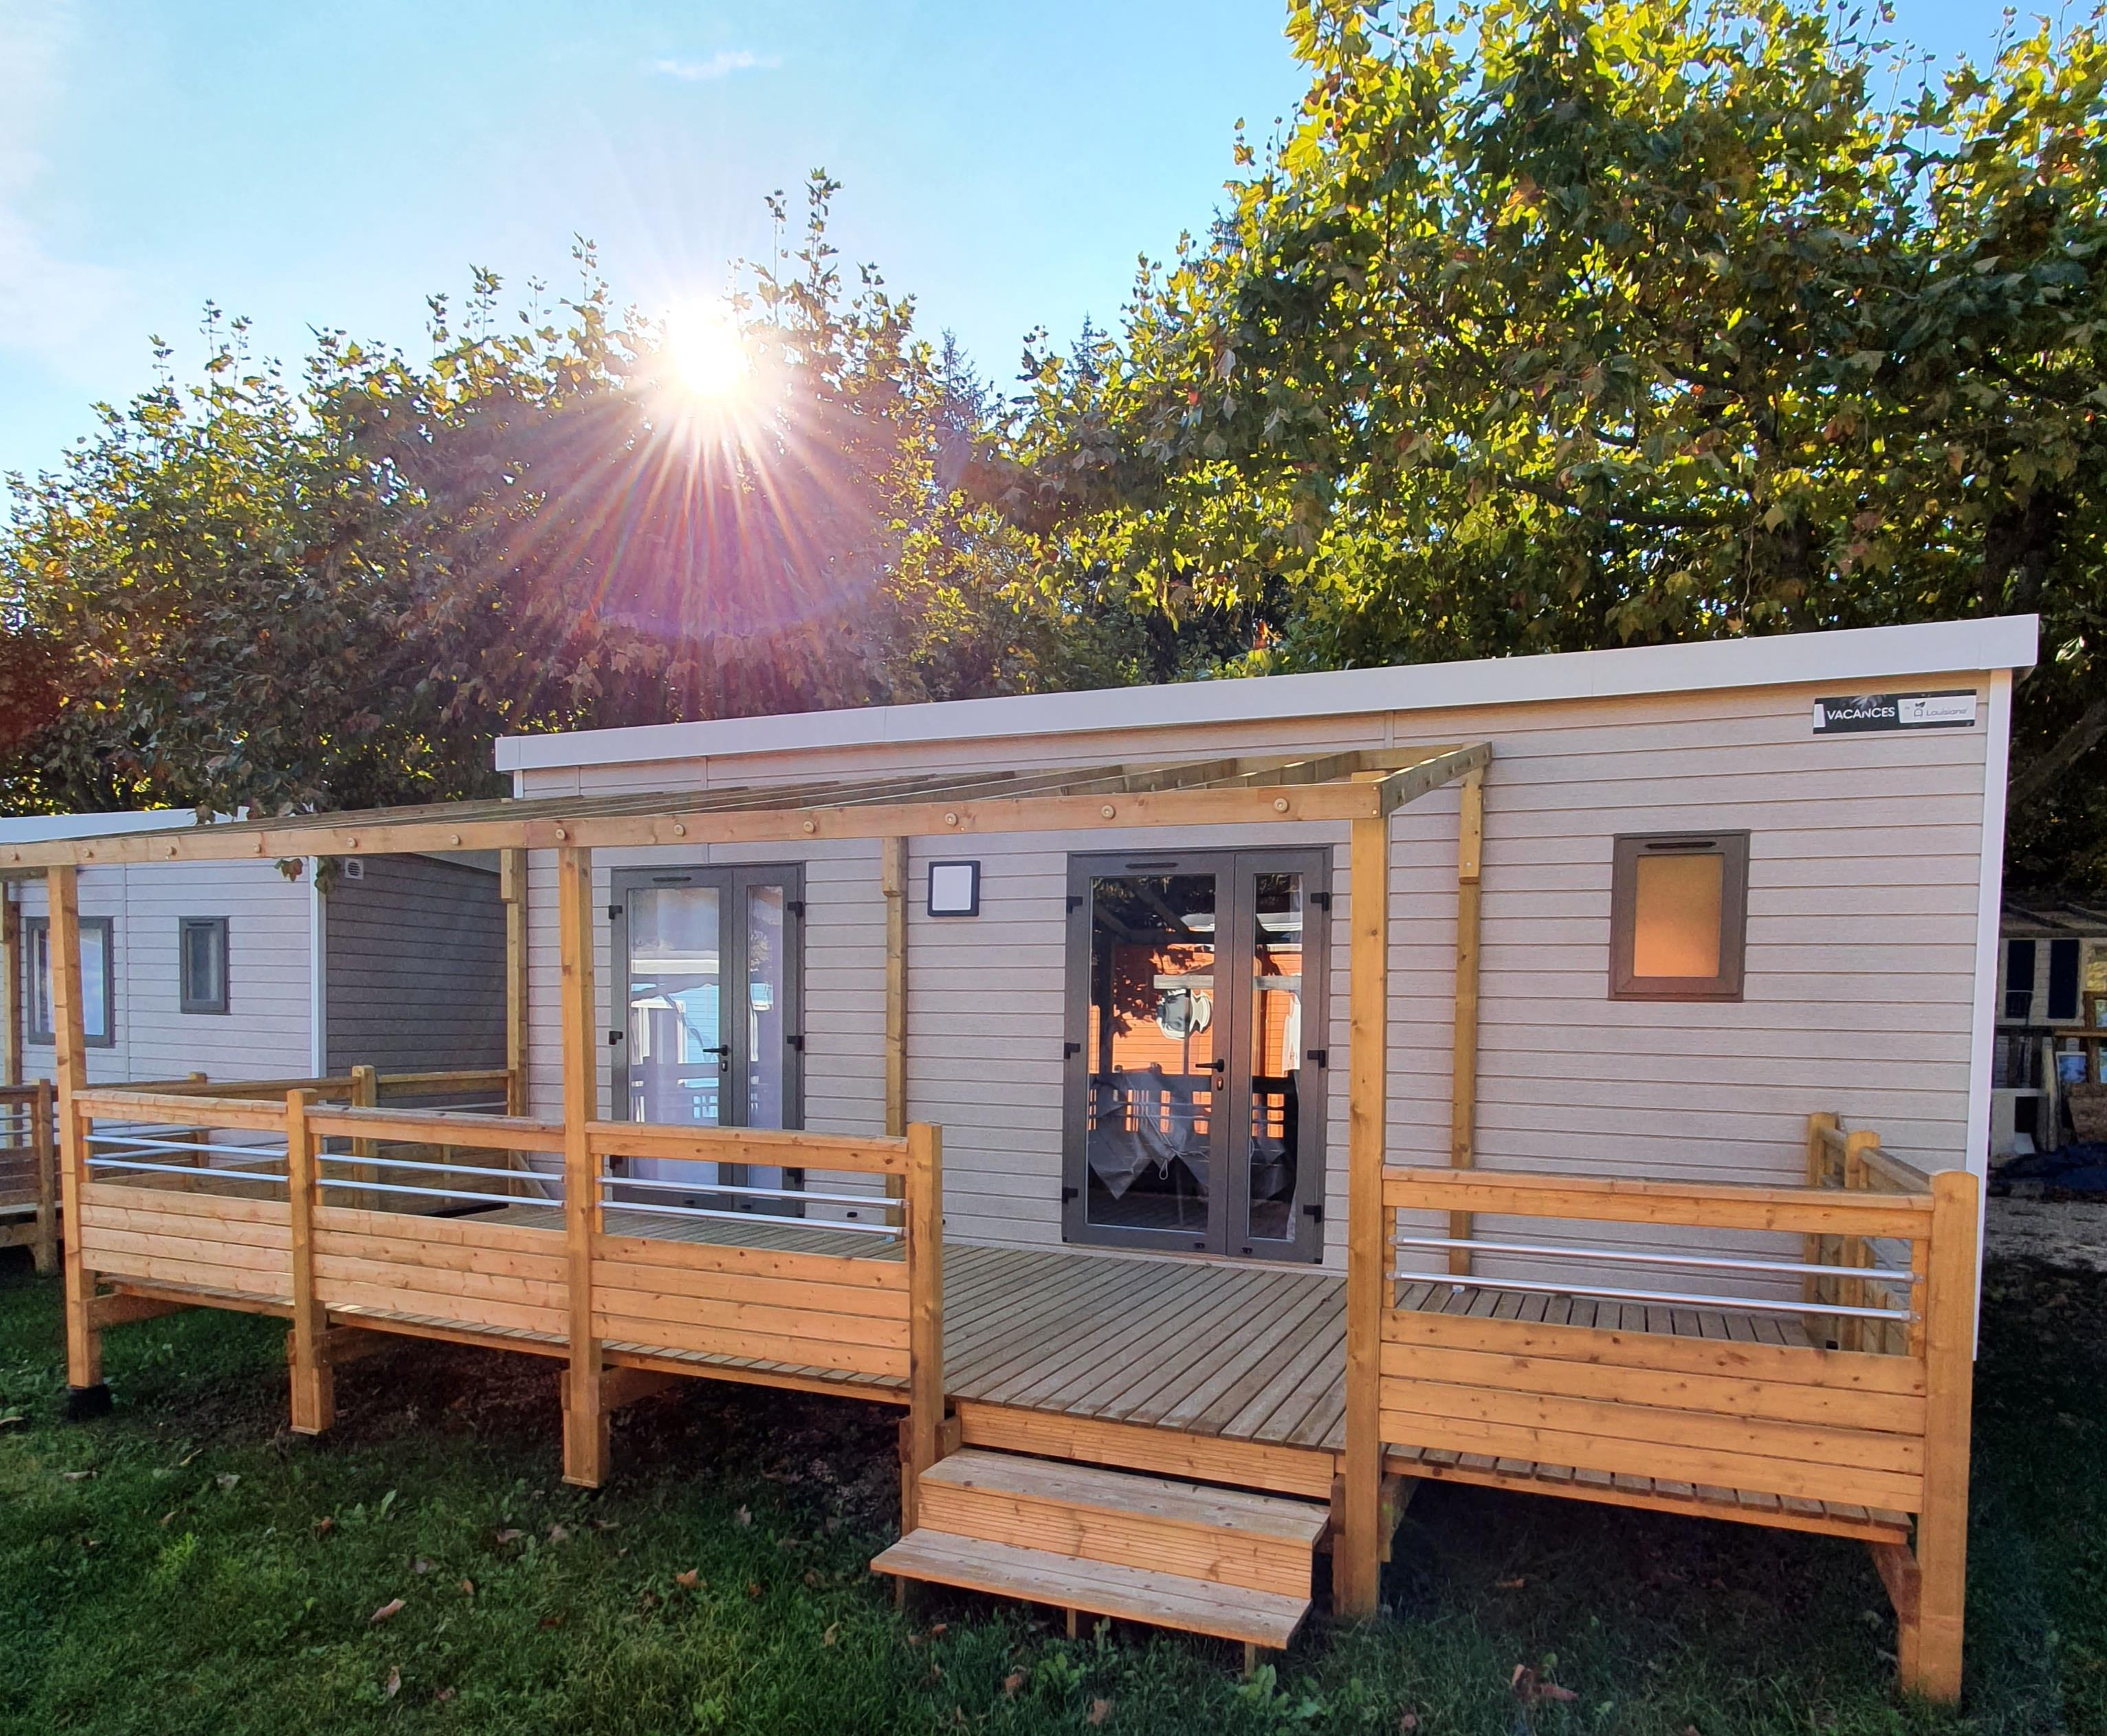 Huuraccommodatie - Mobil Home Confort Louisiane Grand Large 2 Chambres Proche Du Lac - Camping D'Herbelon